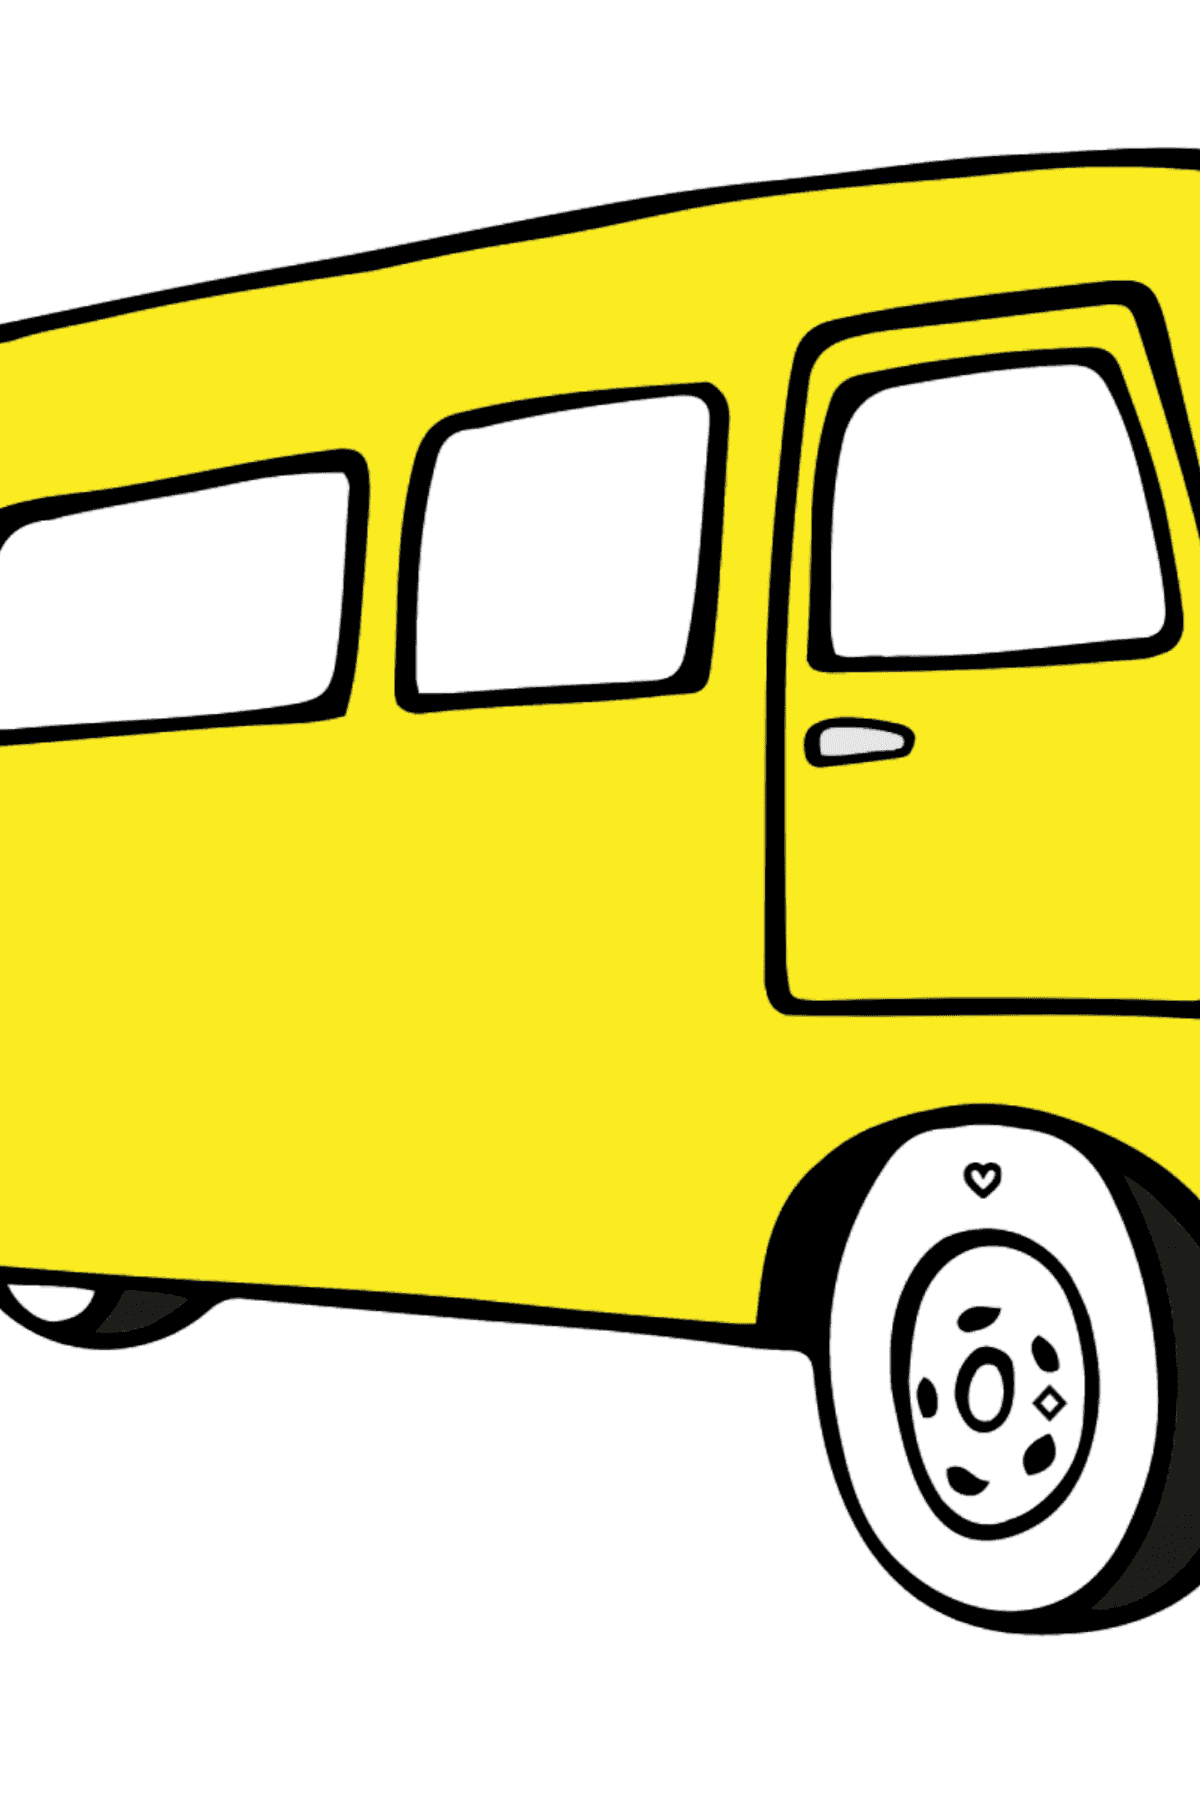 Simple Coloring Page - A Joyful Bus - Coloring by Geometric Shapes for Kids